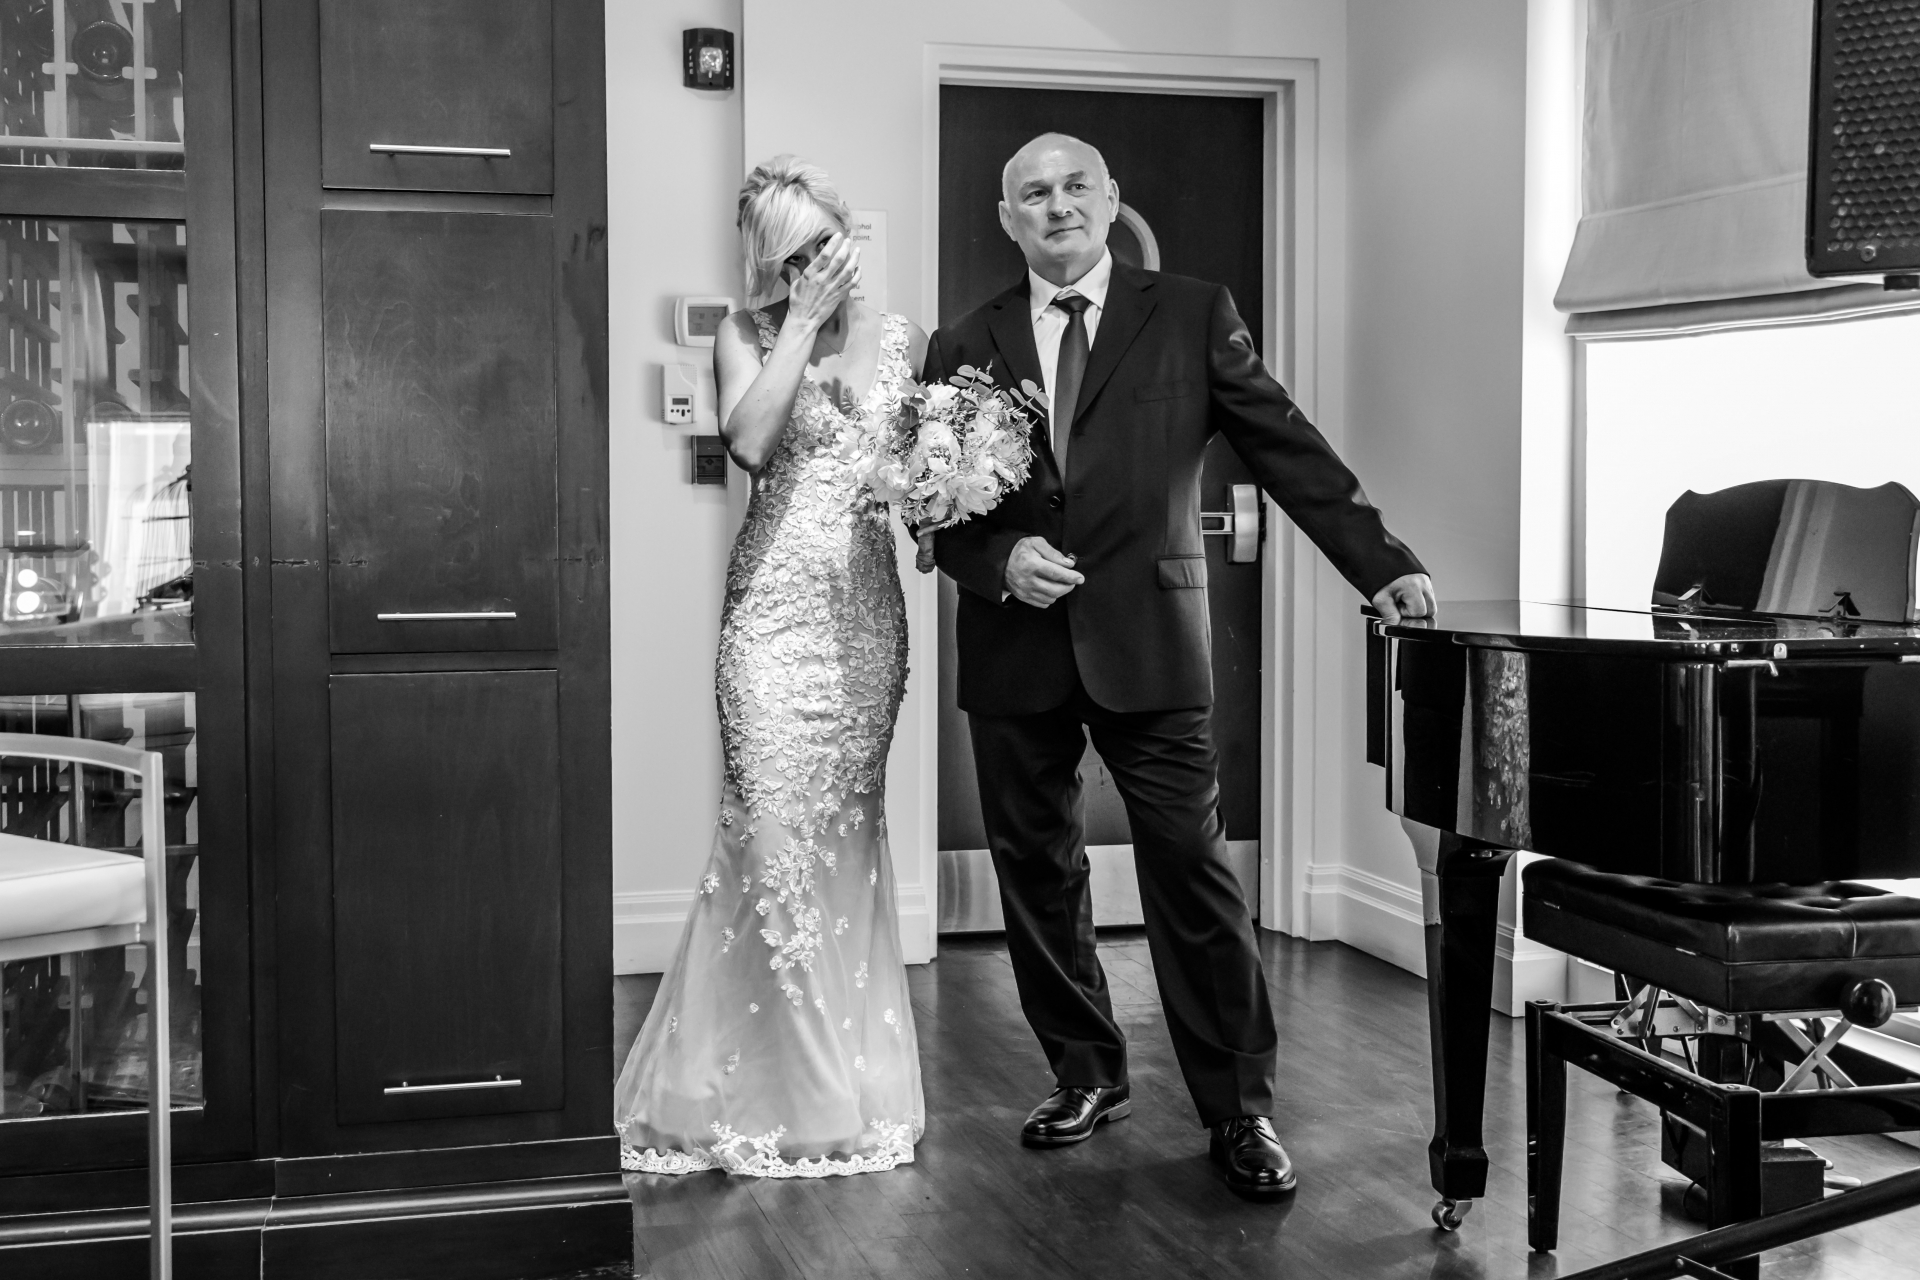 Elopement Ceremony Image from Toronto, Canada | The bride with her dad waiting to start the walk to the aisle